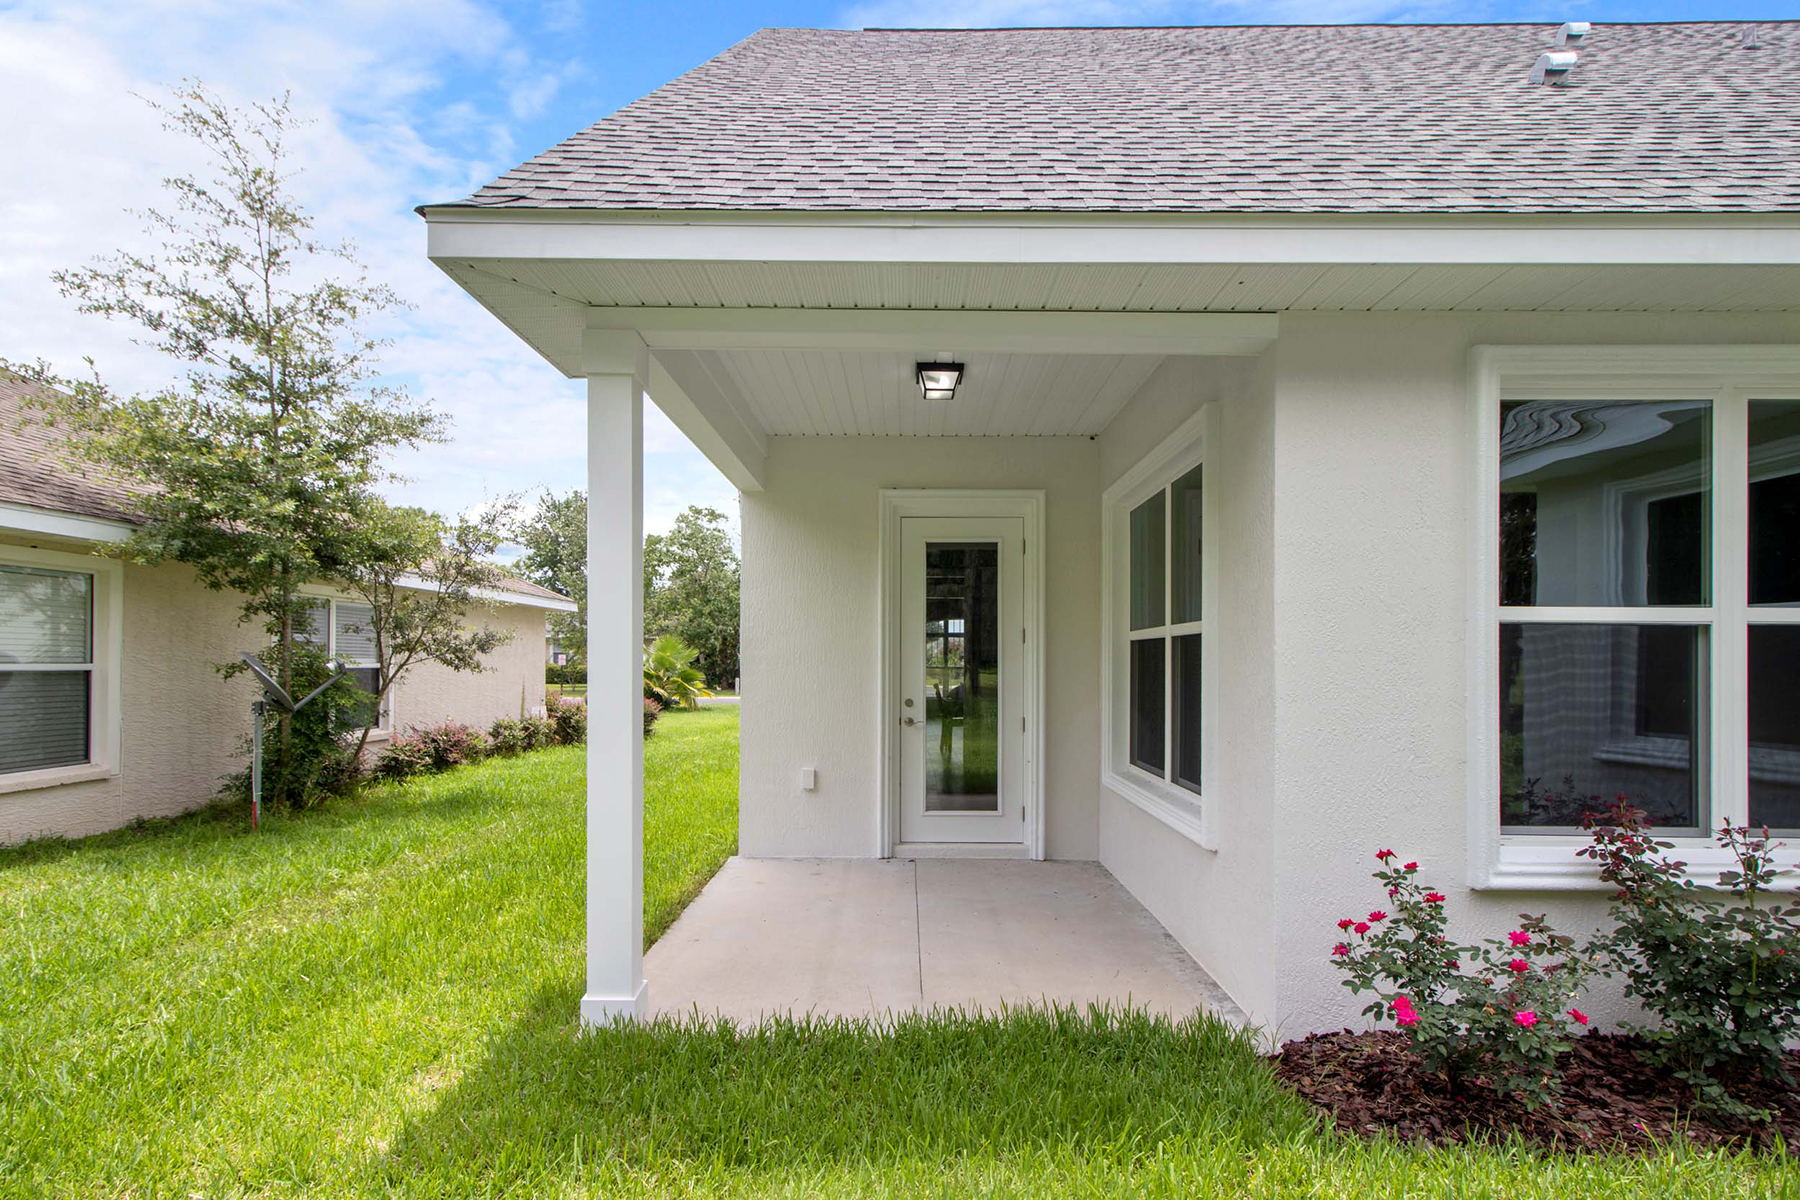 Additional photo for property listing at OCALA 728 Lake Diamond Ave, Ocala, Florida 34472 United States